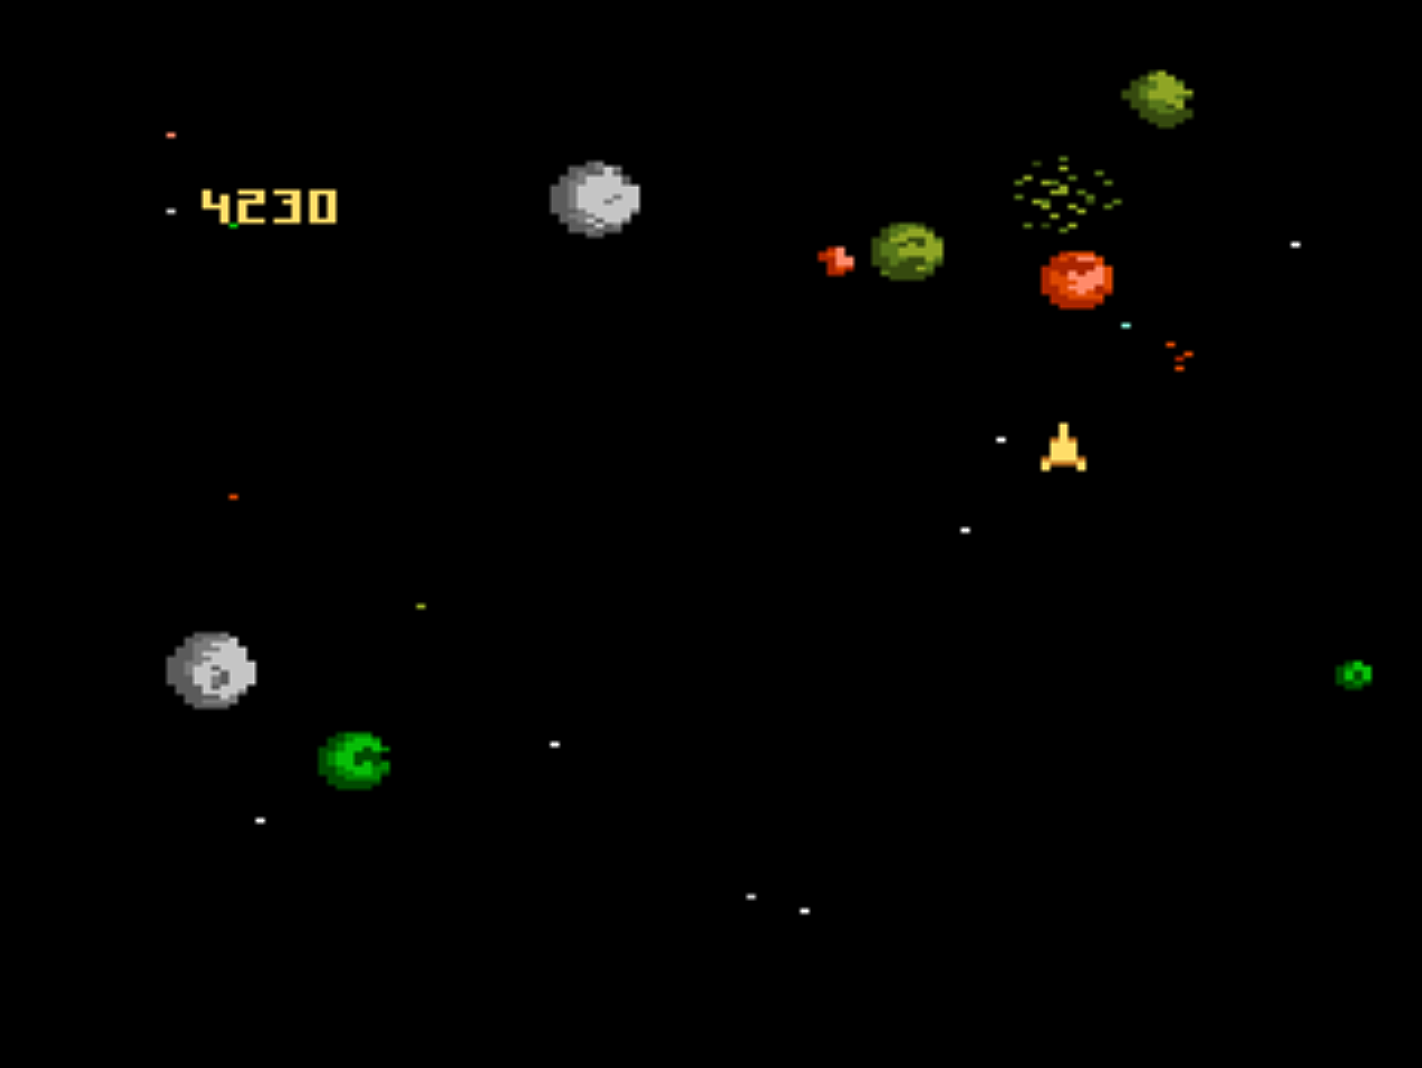 Snap of Asteroids, a home video game for the 7800 by Atari 1987